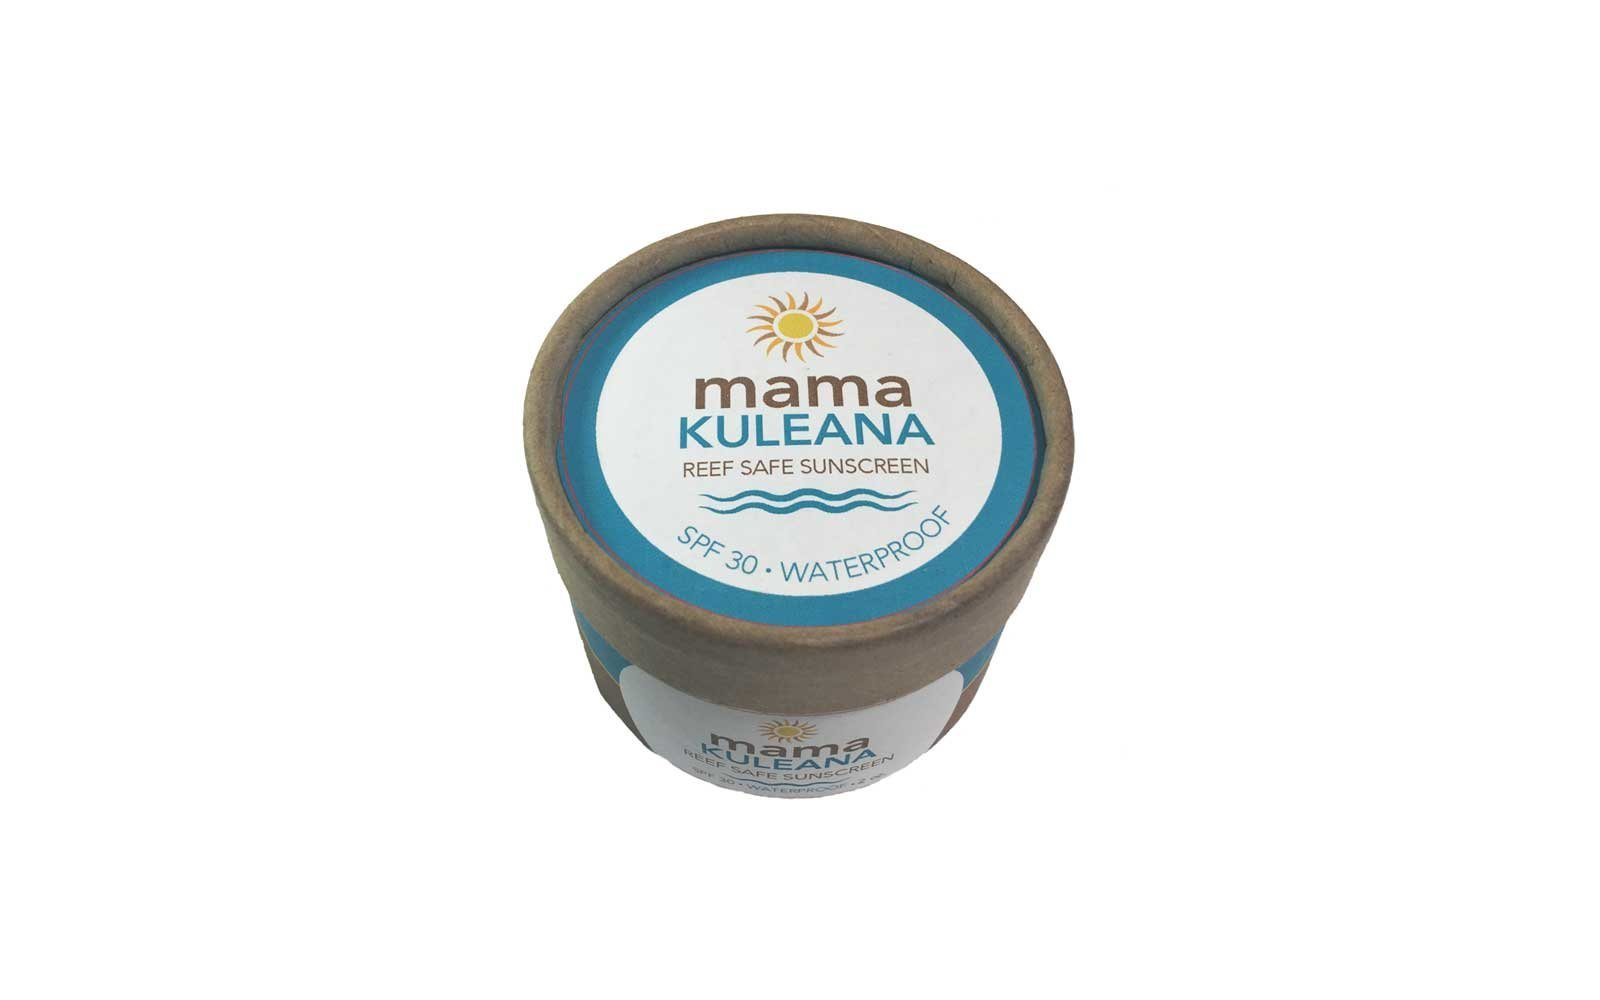 Mama Kuleana Waterproof SPF 30 Reef-safe Sunscreen